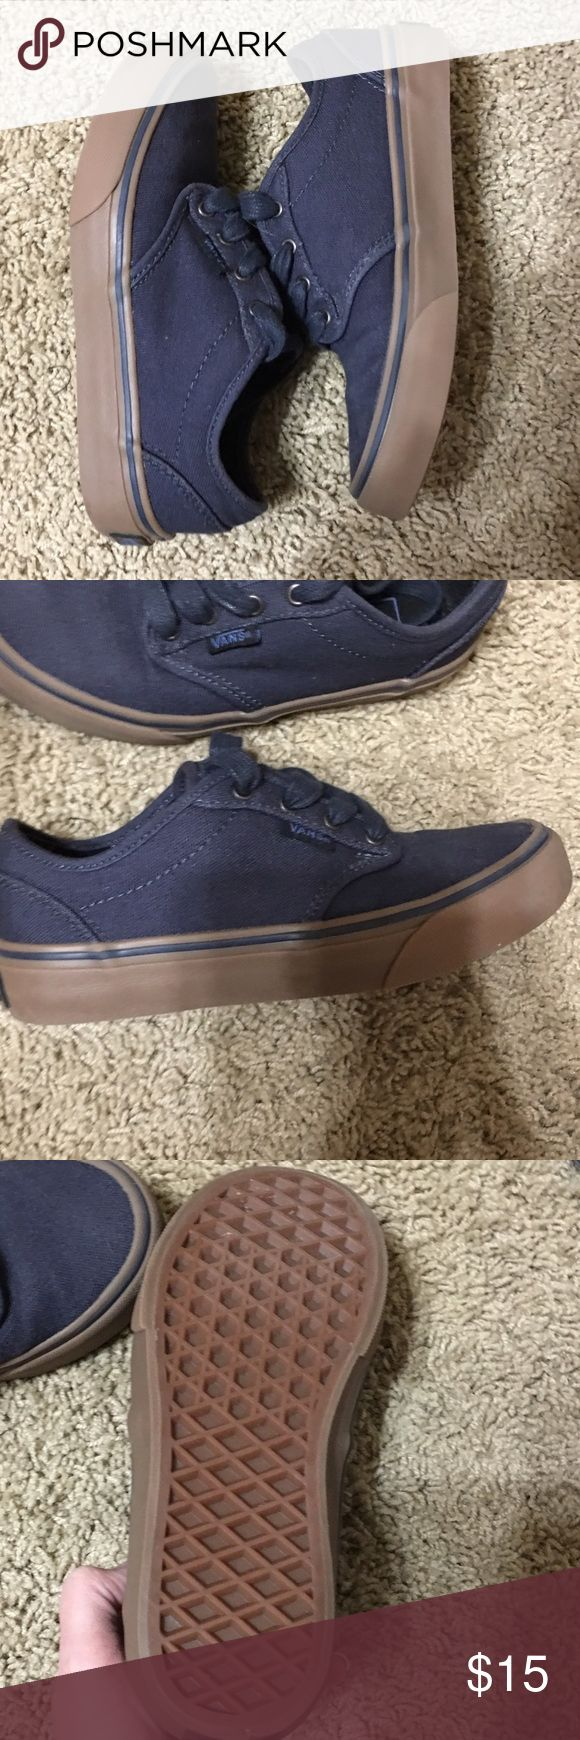 🎮Boys Vans Navy blue canvas boys vans sneakers EUC my son only wore them maybe 2-3 times no flaws. Vans Shoes Sneakers